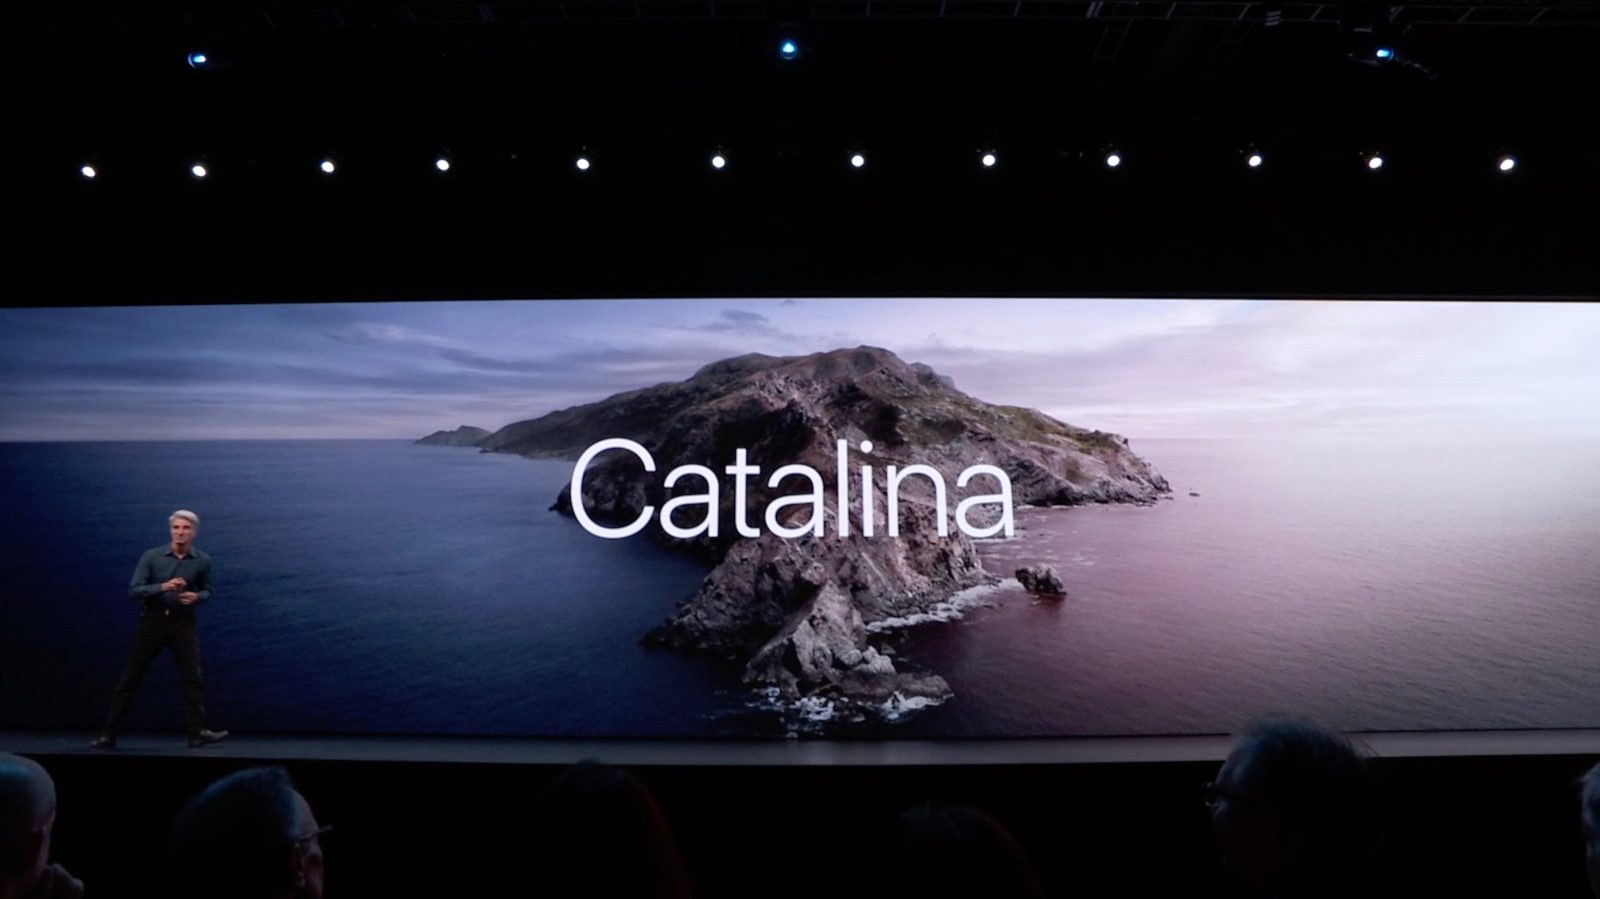 Download the new macOS Catalina wallpaper here   9to5Mac 1600x899